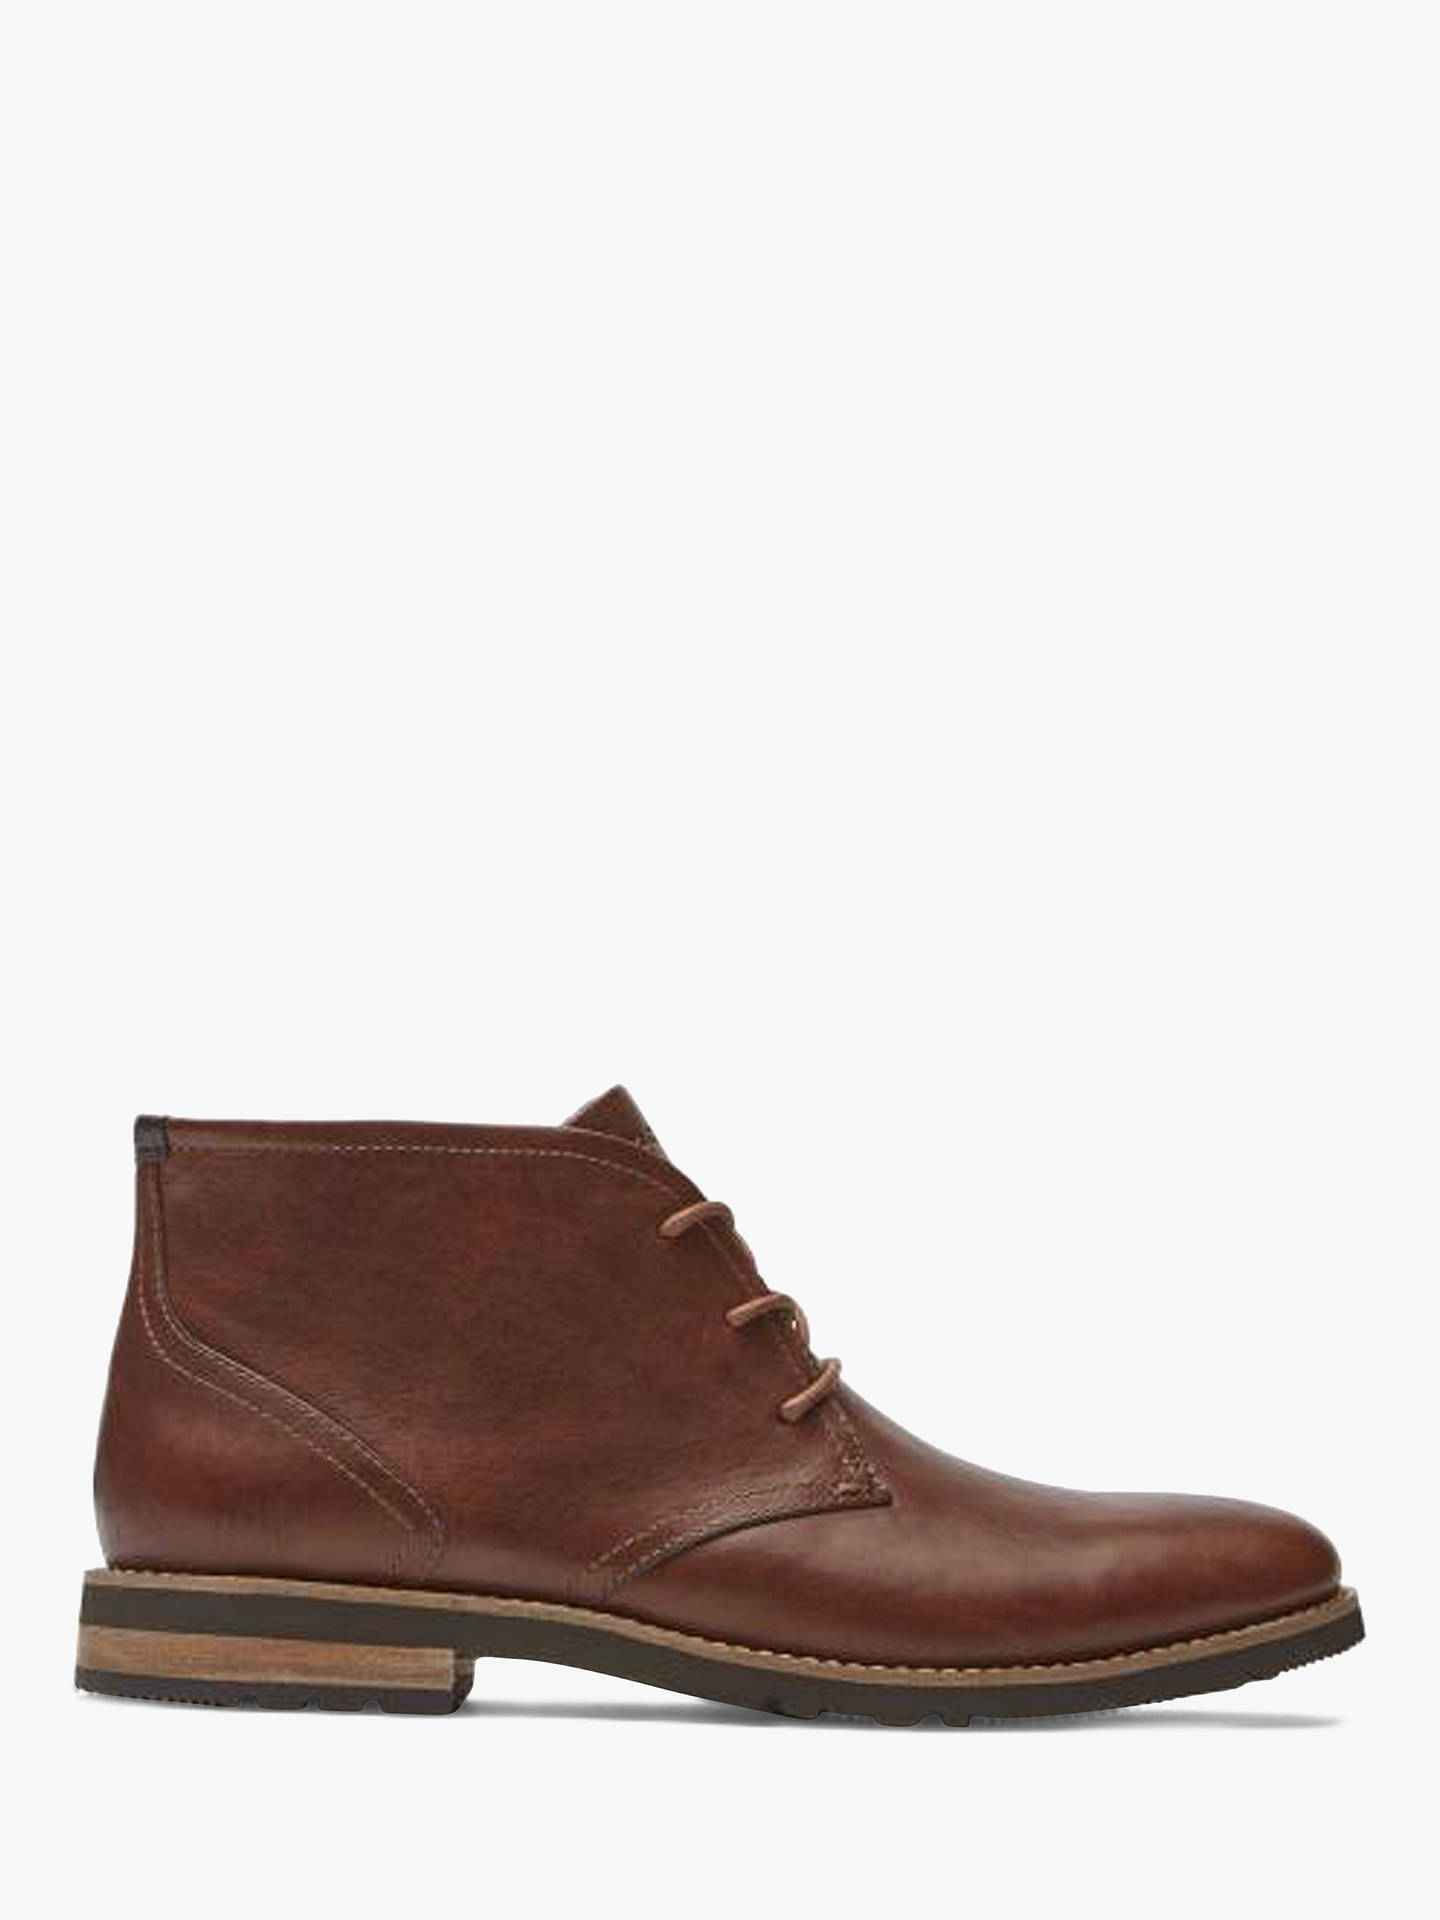 BuyRockport Leather Chukka Boots, Tan, 7 Online at johnlewis.com